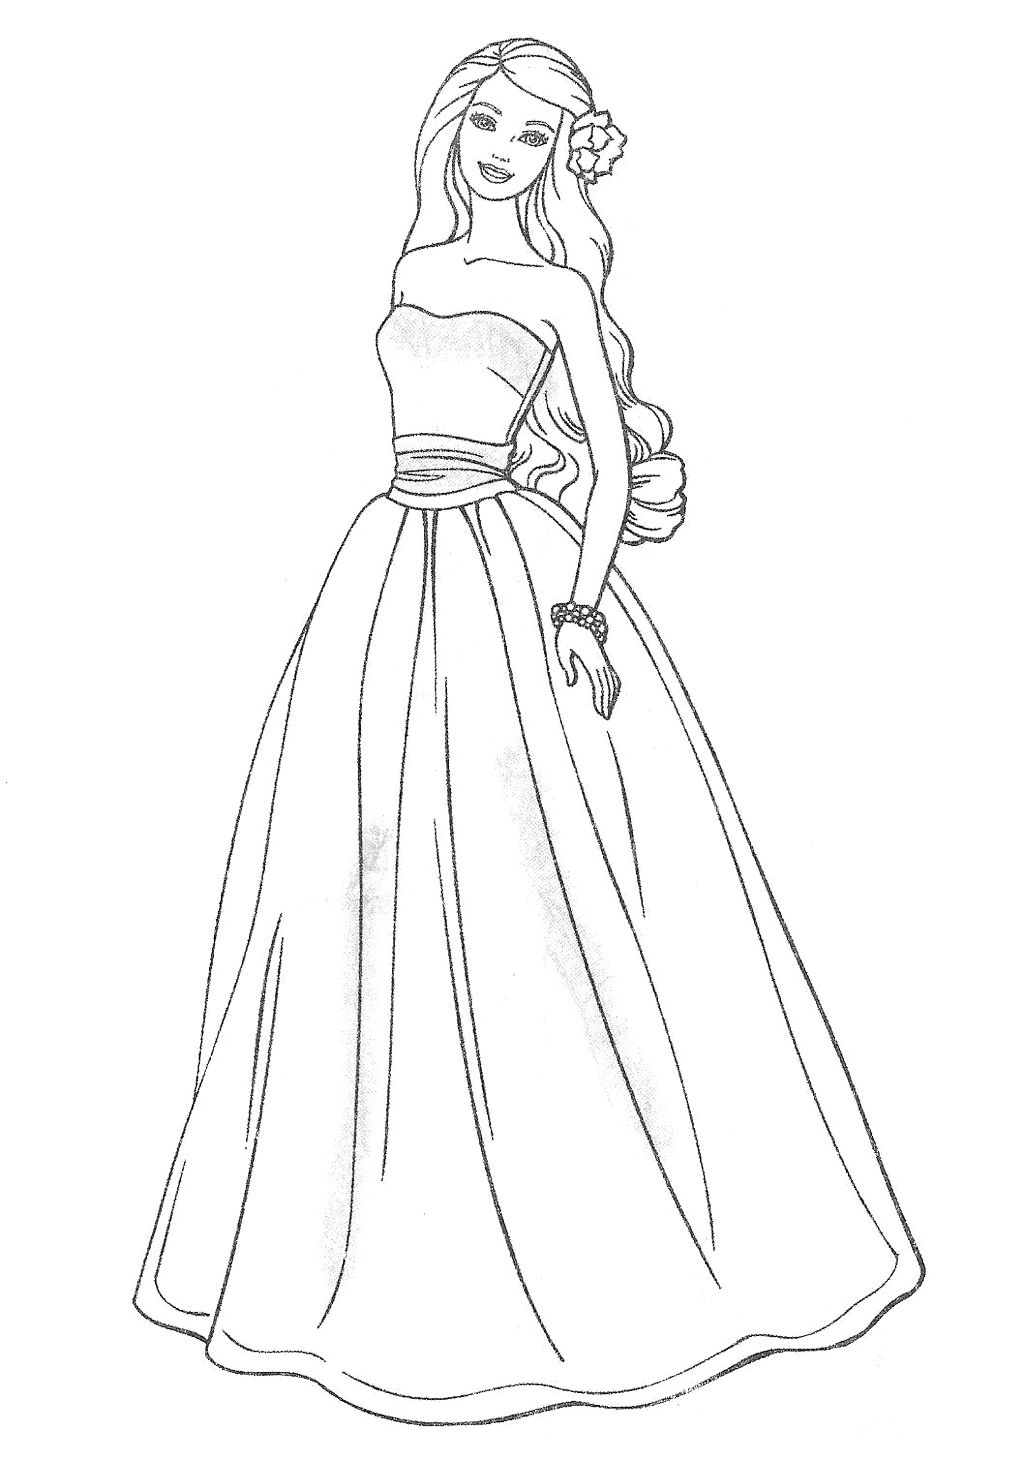 Barbie Doll Wearing A Party Dress Coloring Pages